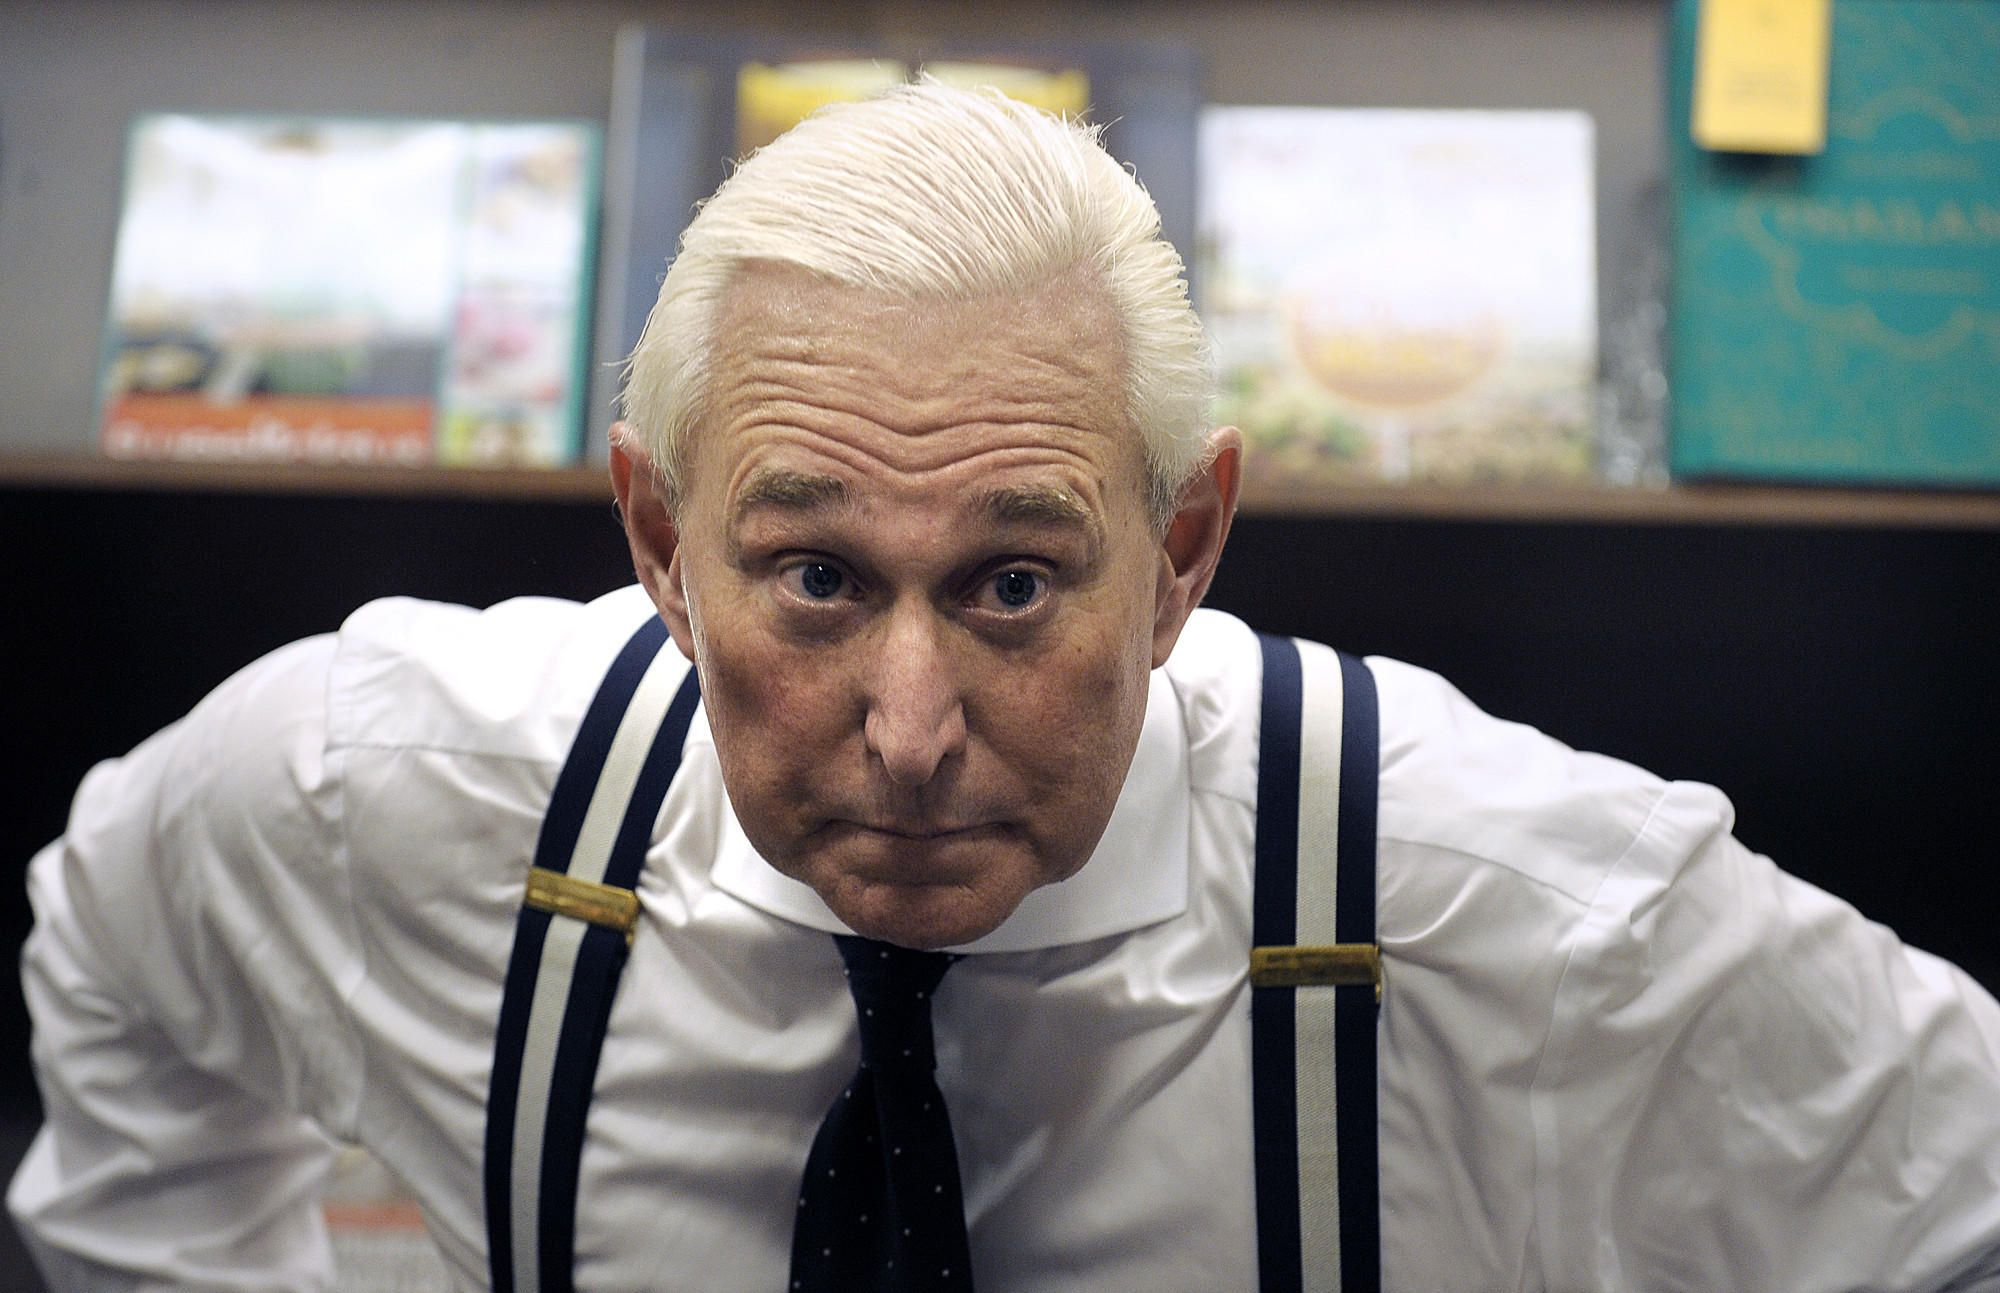 Longtime Donald Trump confidante and advisor Roger Stone.